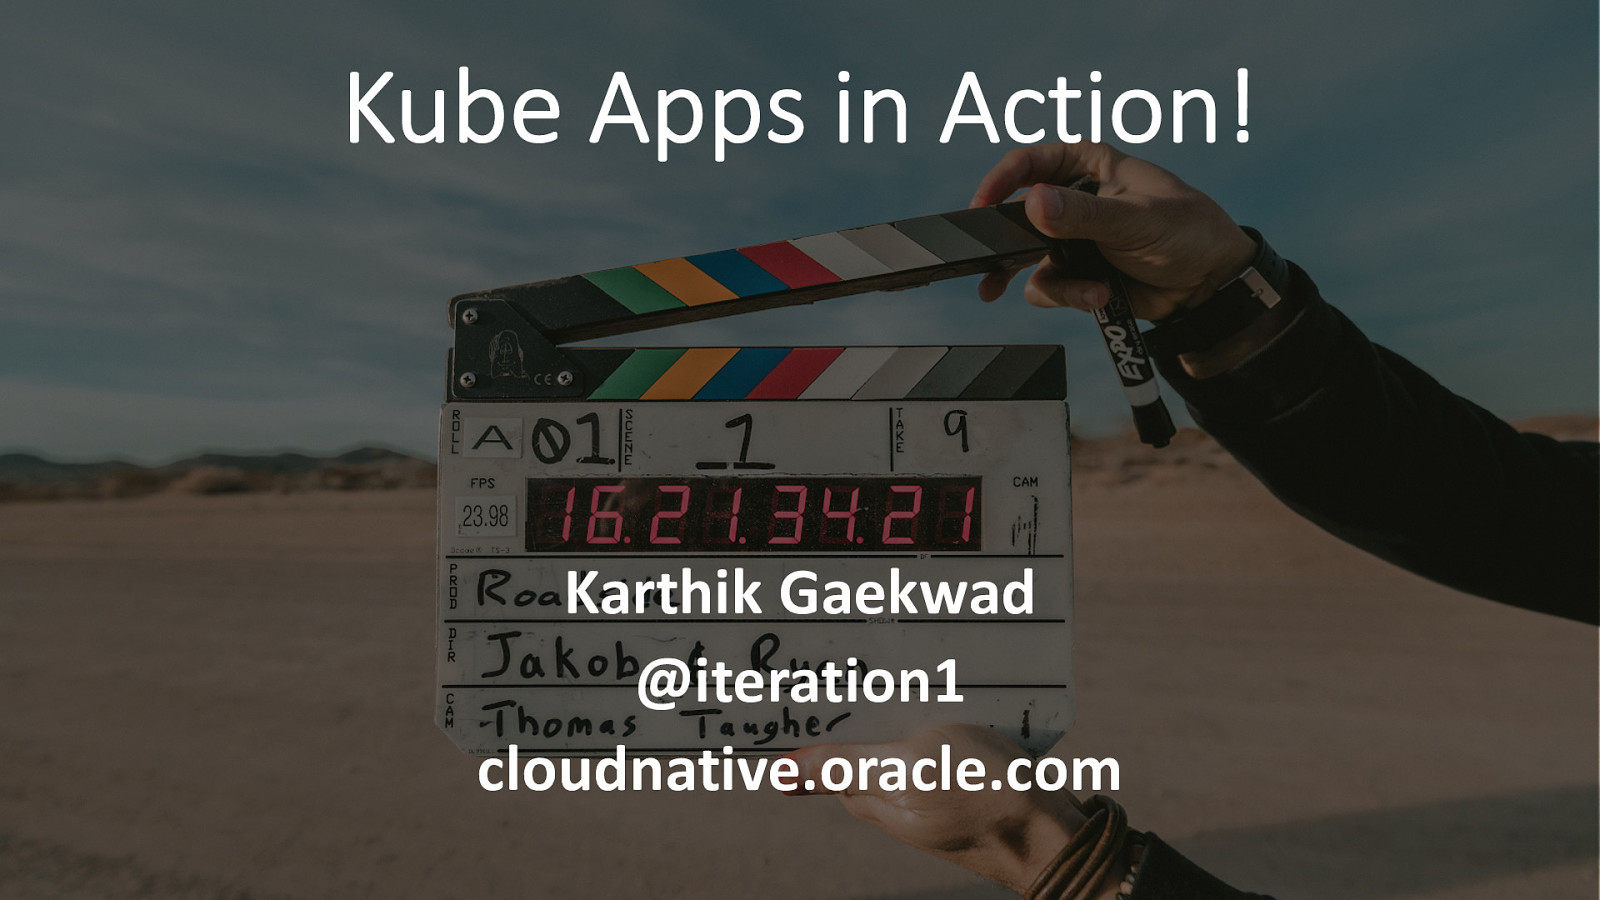 Kube Apps in action